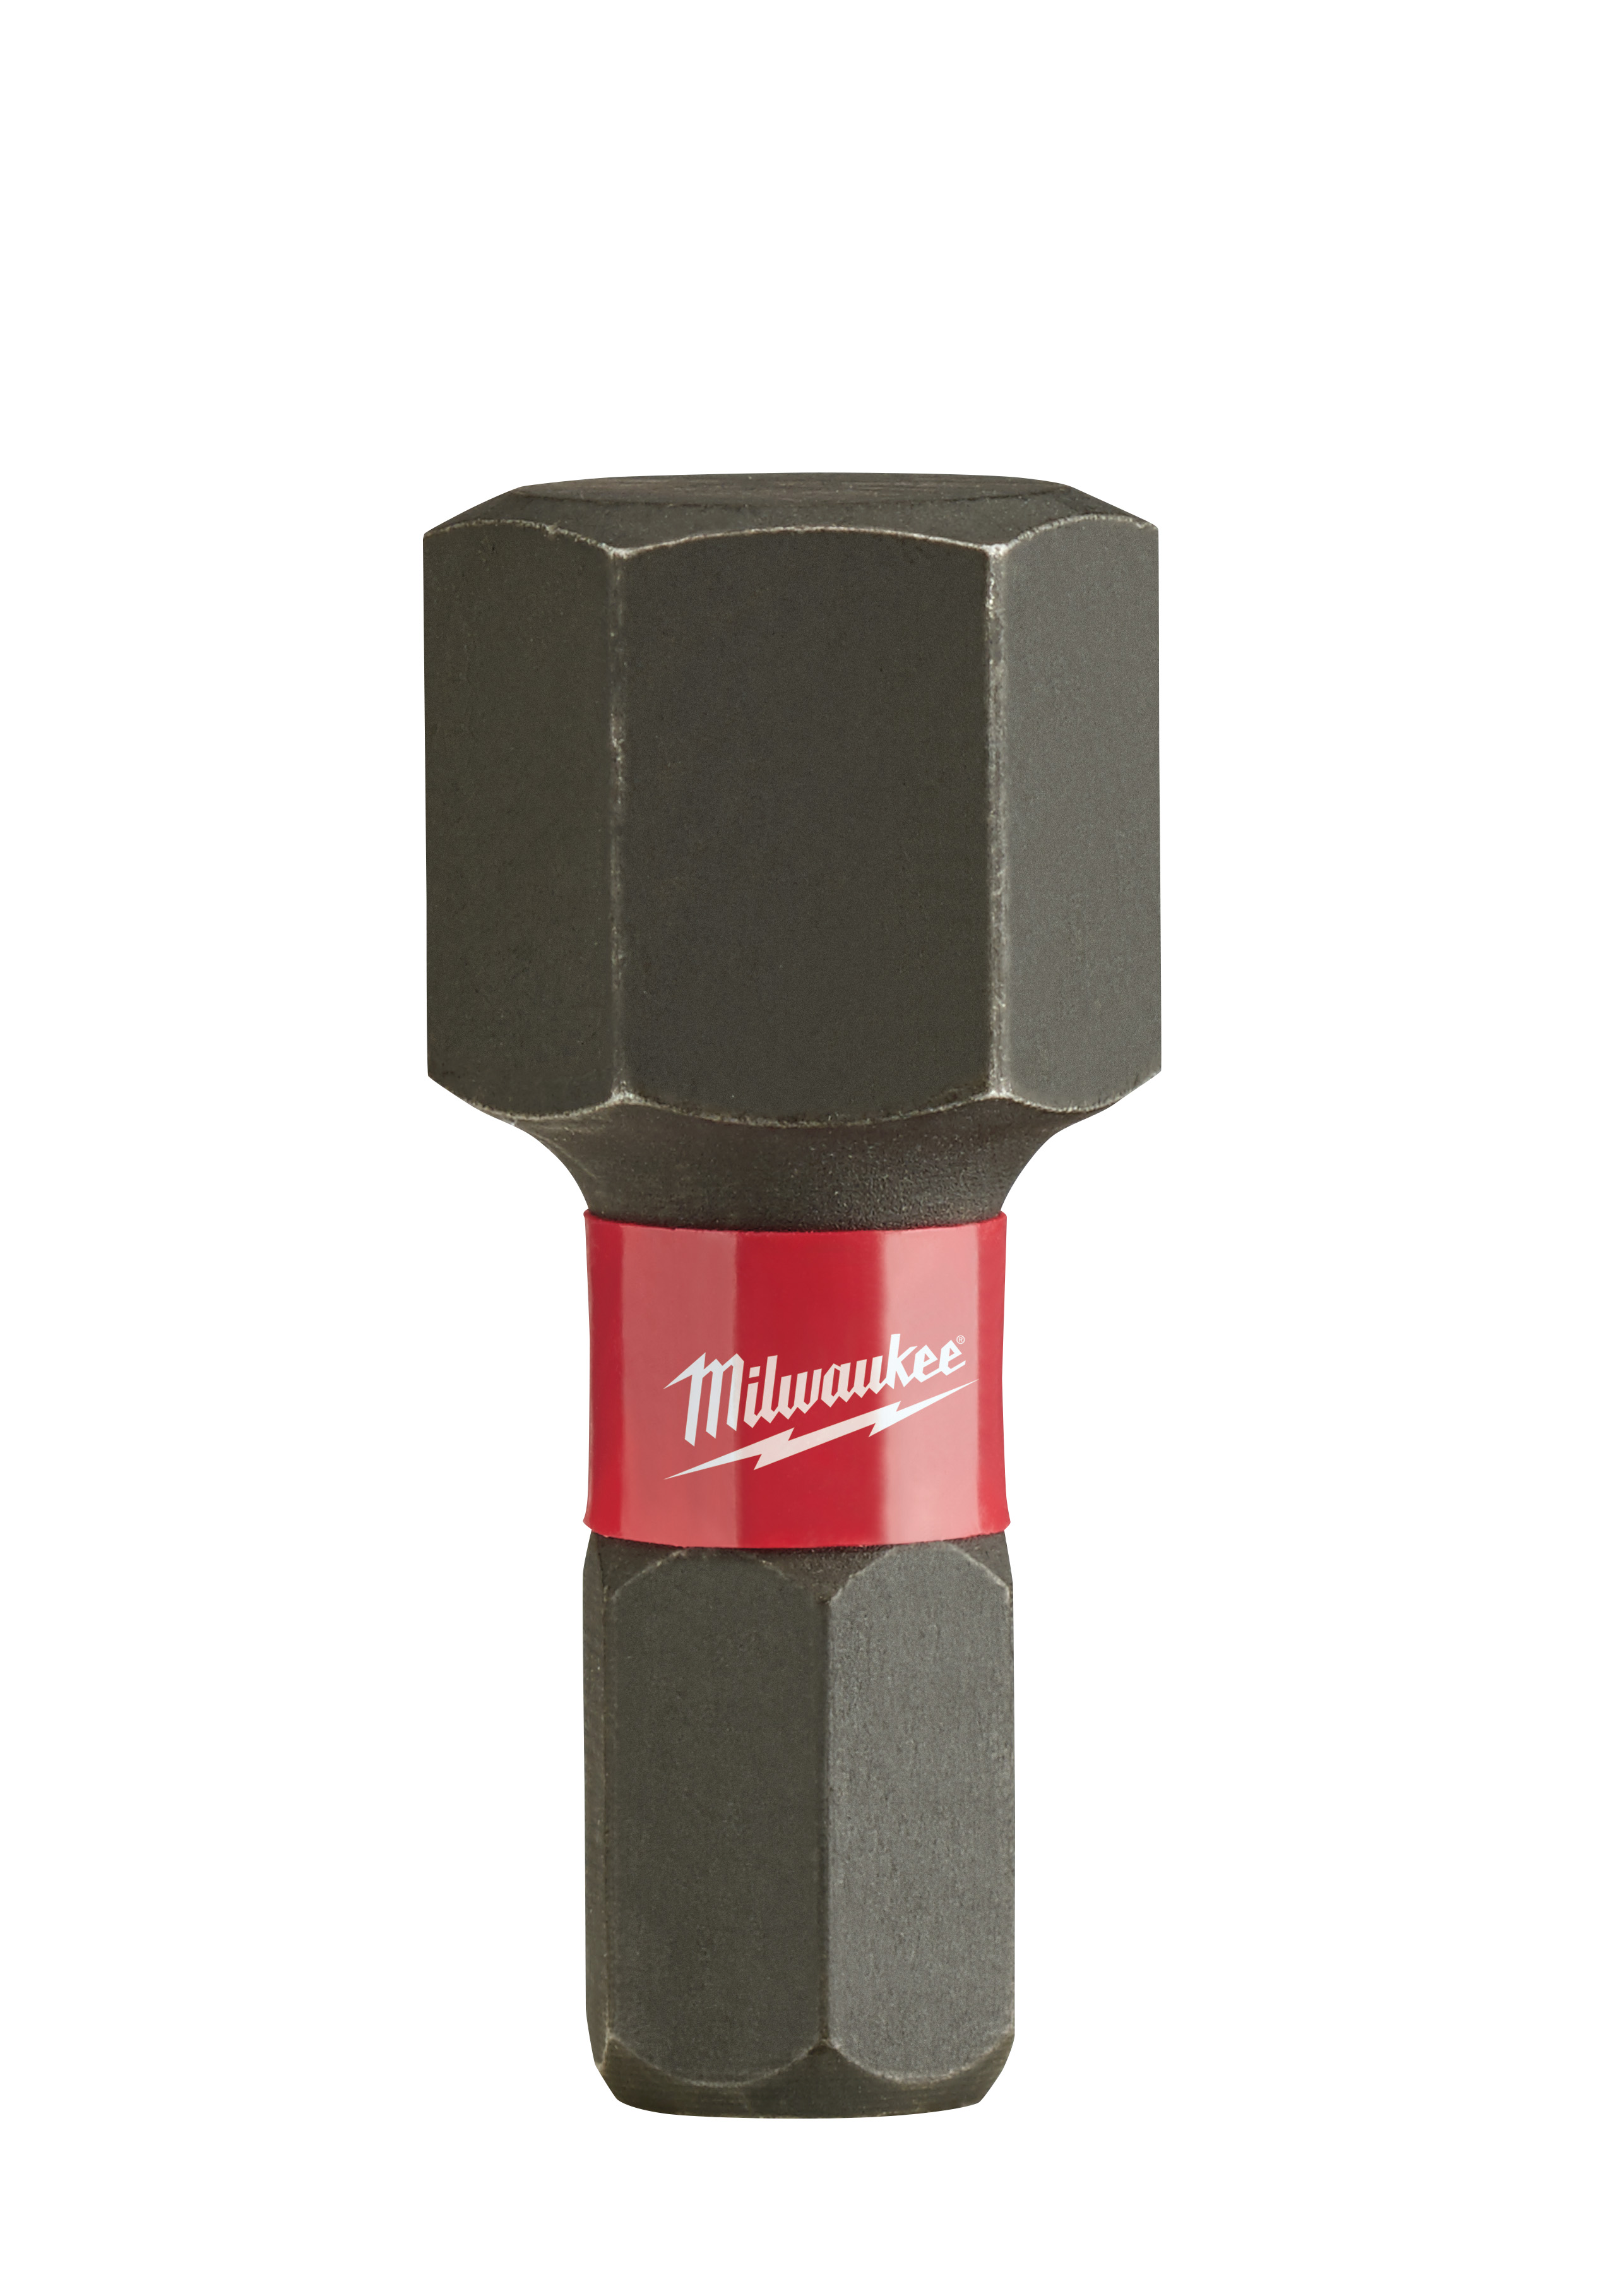 Milwaukee® SHOCKWAVE™ 48-32-4730 Impact Insert Bit, 10 mm Hex Point, 1 in OAL, Custom Alloy76™ Steel